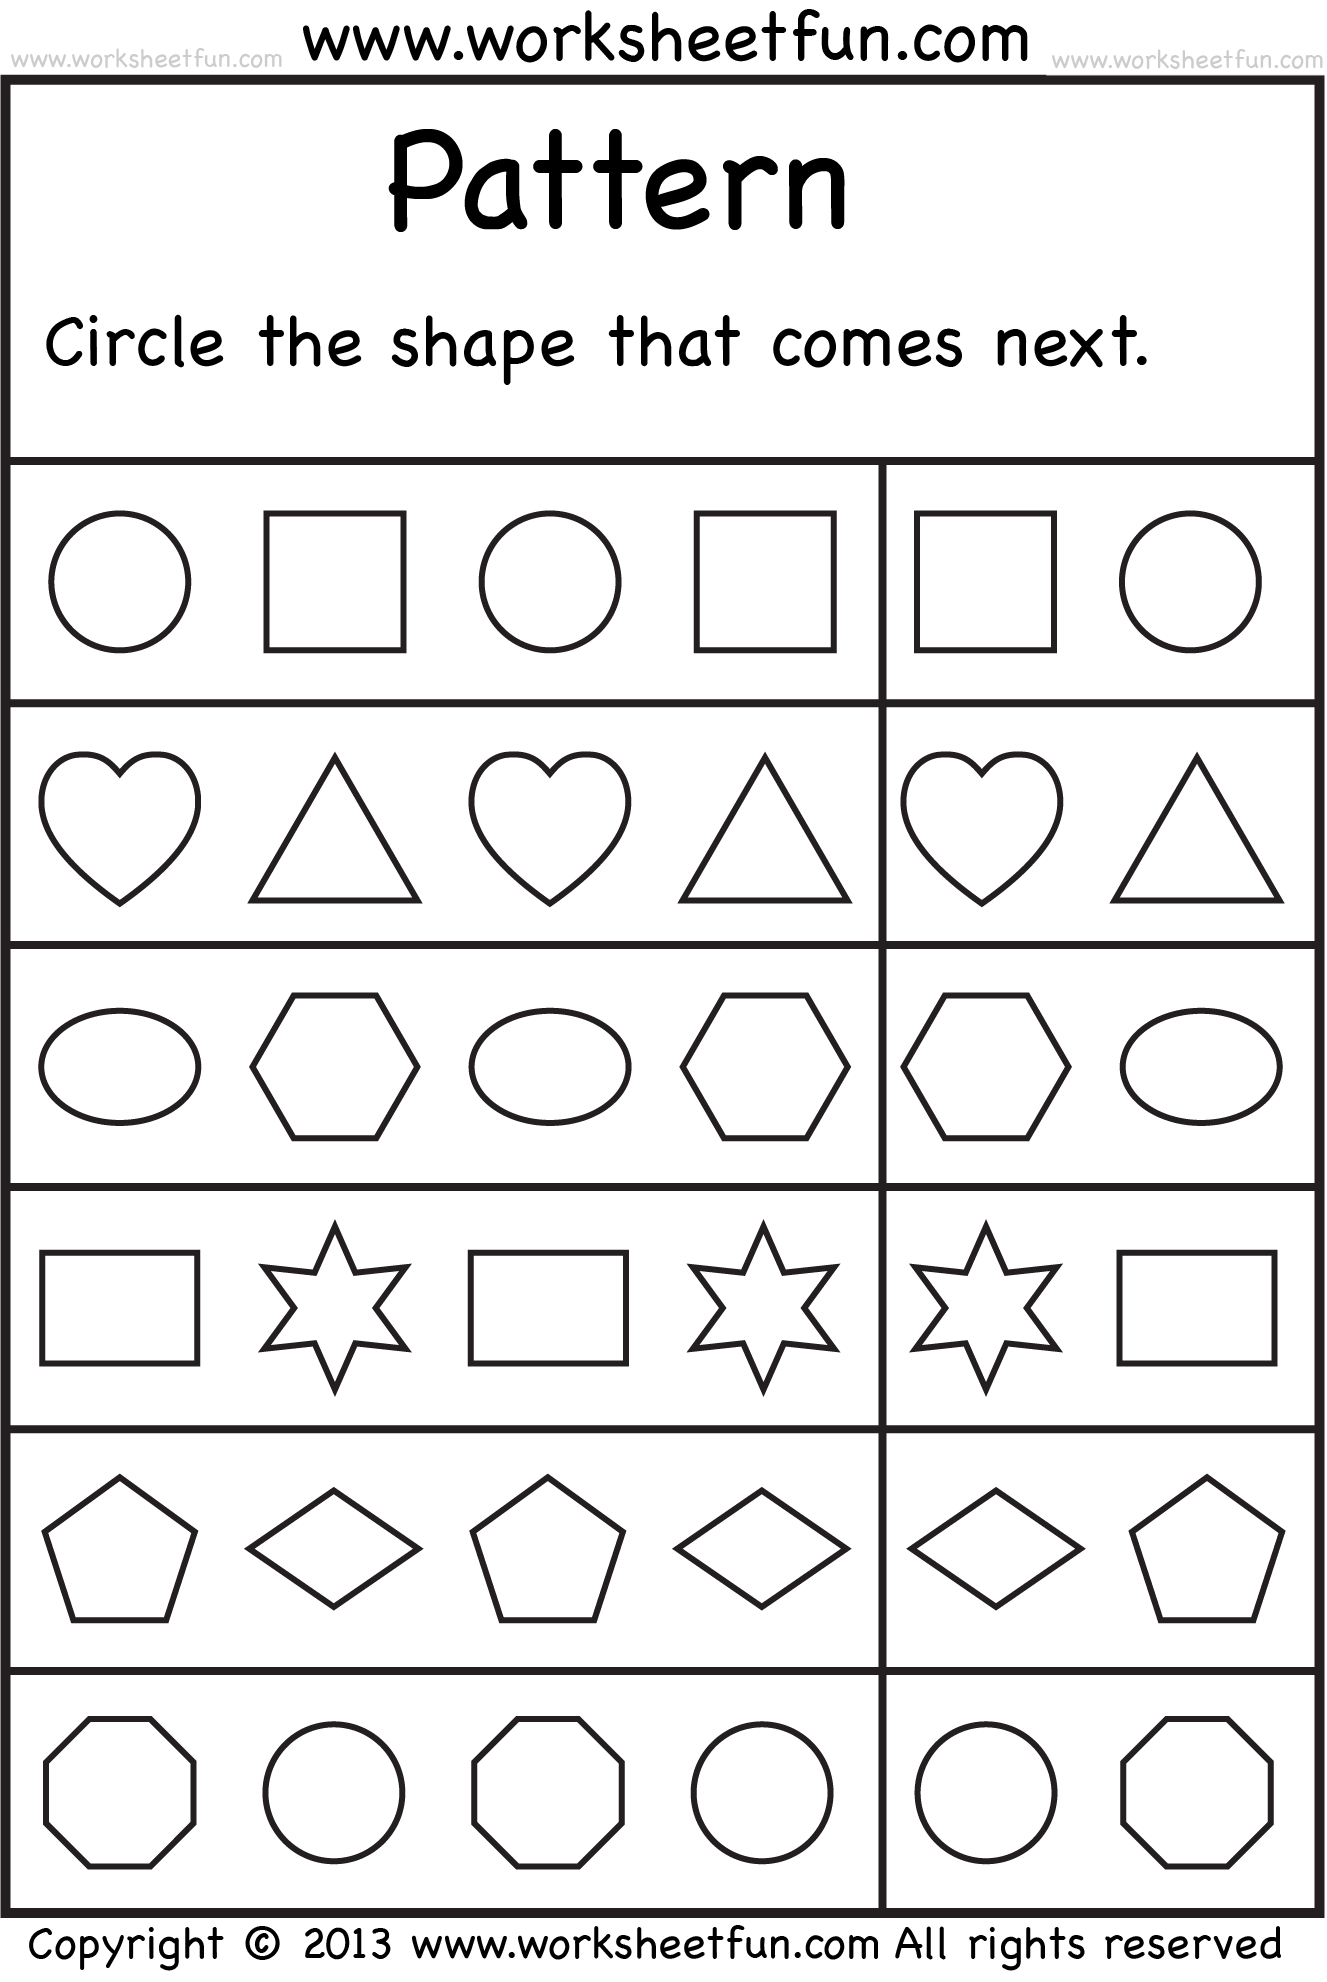 Weirdmailus  Marvellous  Images About School Worksheets On Pinterest  Number Words  With Goodlooking  Images About School Worksheets On Pinterest  Number Words Alphabet Worksheets And Free Printable Kindergarten Worksheets With Nice Math Worksheets Th Graders Also Excel Formula Across Worksheets In Addition Geographic Terms Worksheet And Fraction Shapes Worksheet As Well As Tracing Letters Az Worksheets Additionally Worksheets On Animals From Pinterestcom With Weirdmailus  Goodlooking  Images About School Worksheets On Pinterest  Number Words  With Nice  Images About School Worksheets On Pinterest  Number Words Alphabet Worksheets And Free Printable Kindergarten Worksheets And Marvellous Math Worksheets Th Graders Also Excel Formula Across Worksheets In Addition Geographic Terms Worksheet From Pinterestcom